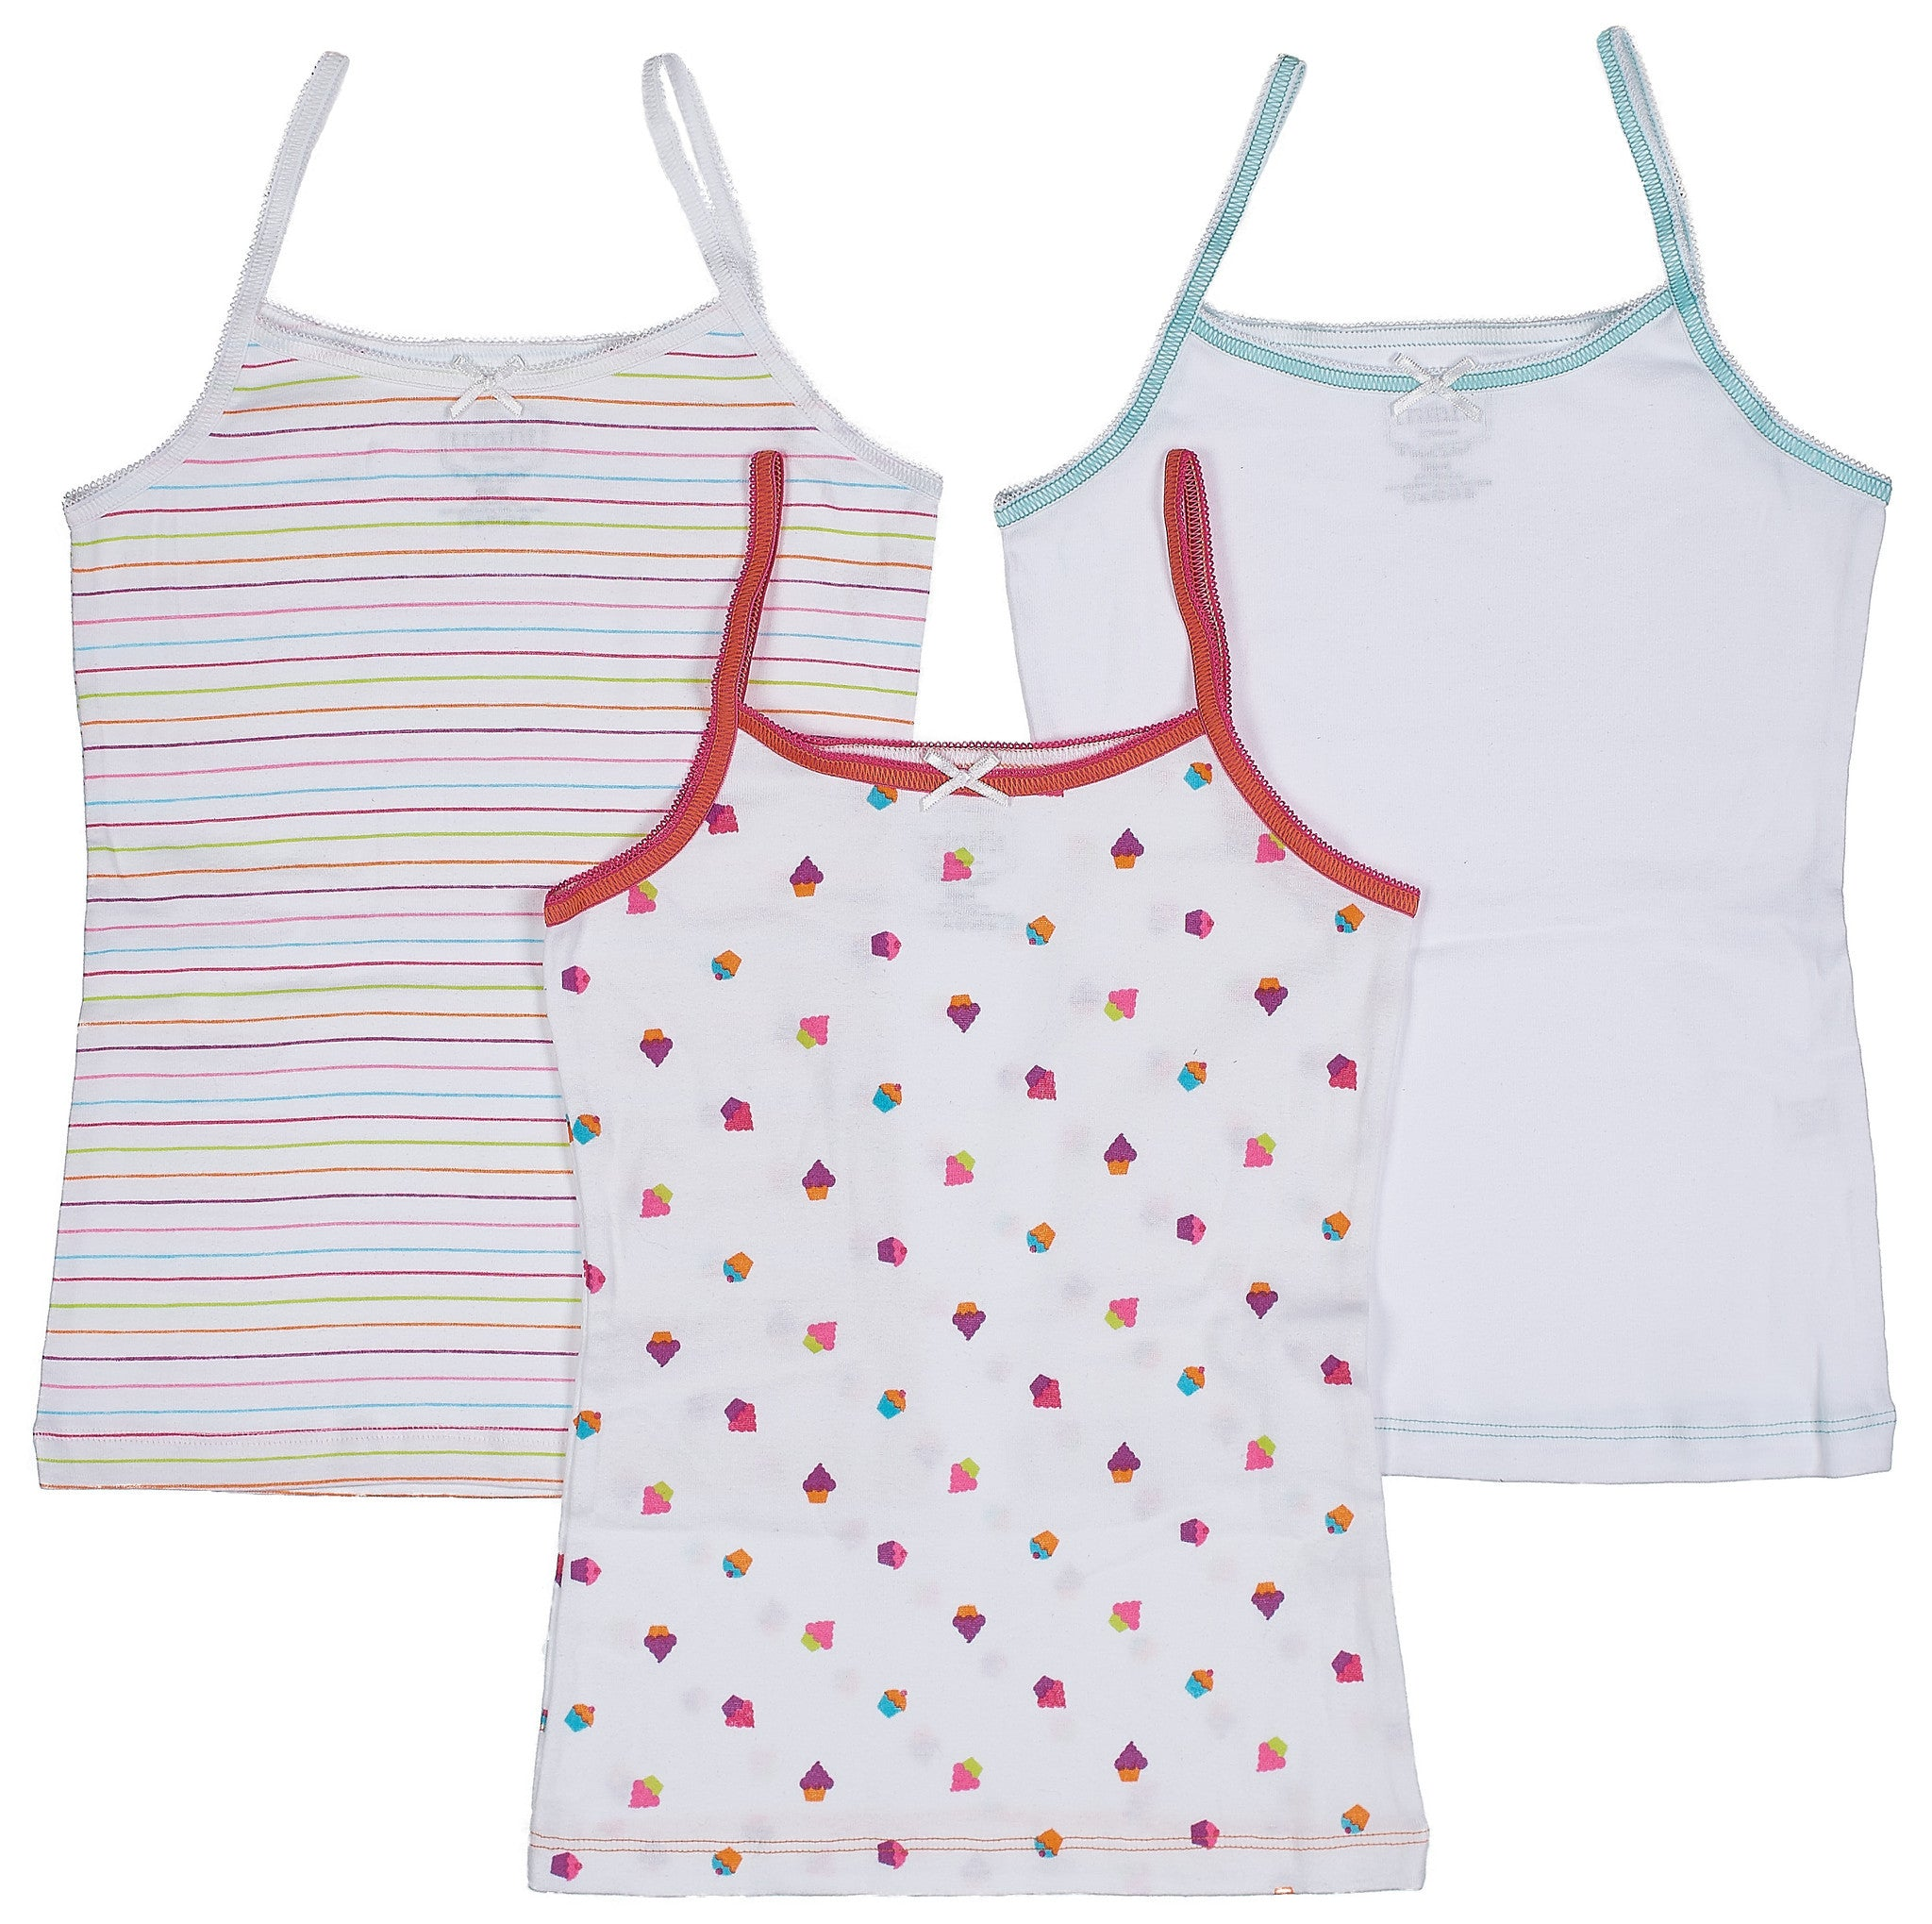 3-Pack Yummy Cupcakes Camisole Undershirt 100% Cotton Fashion Prints